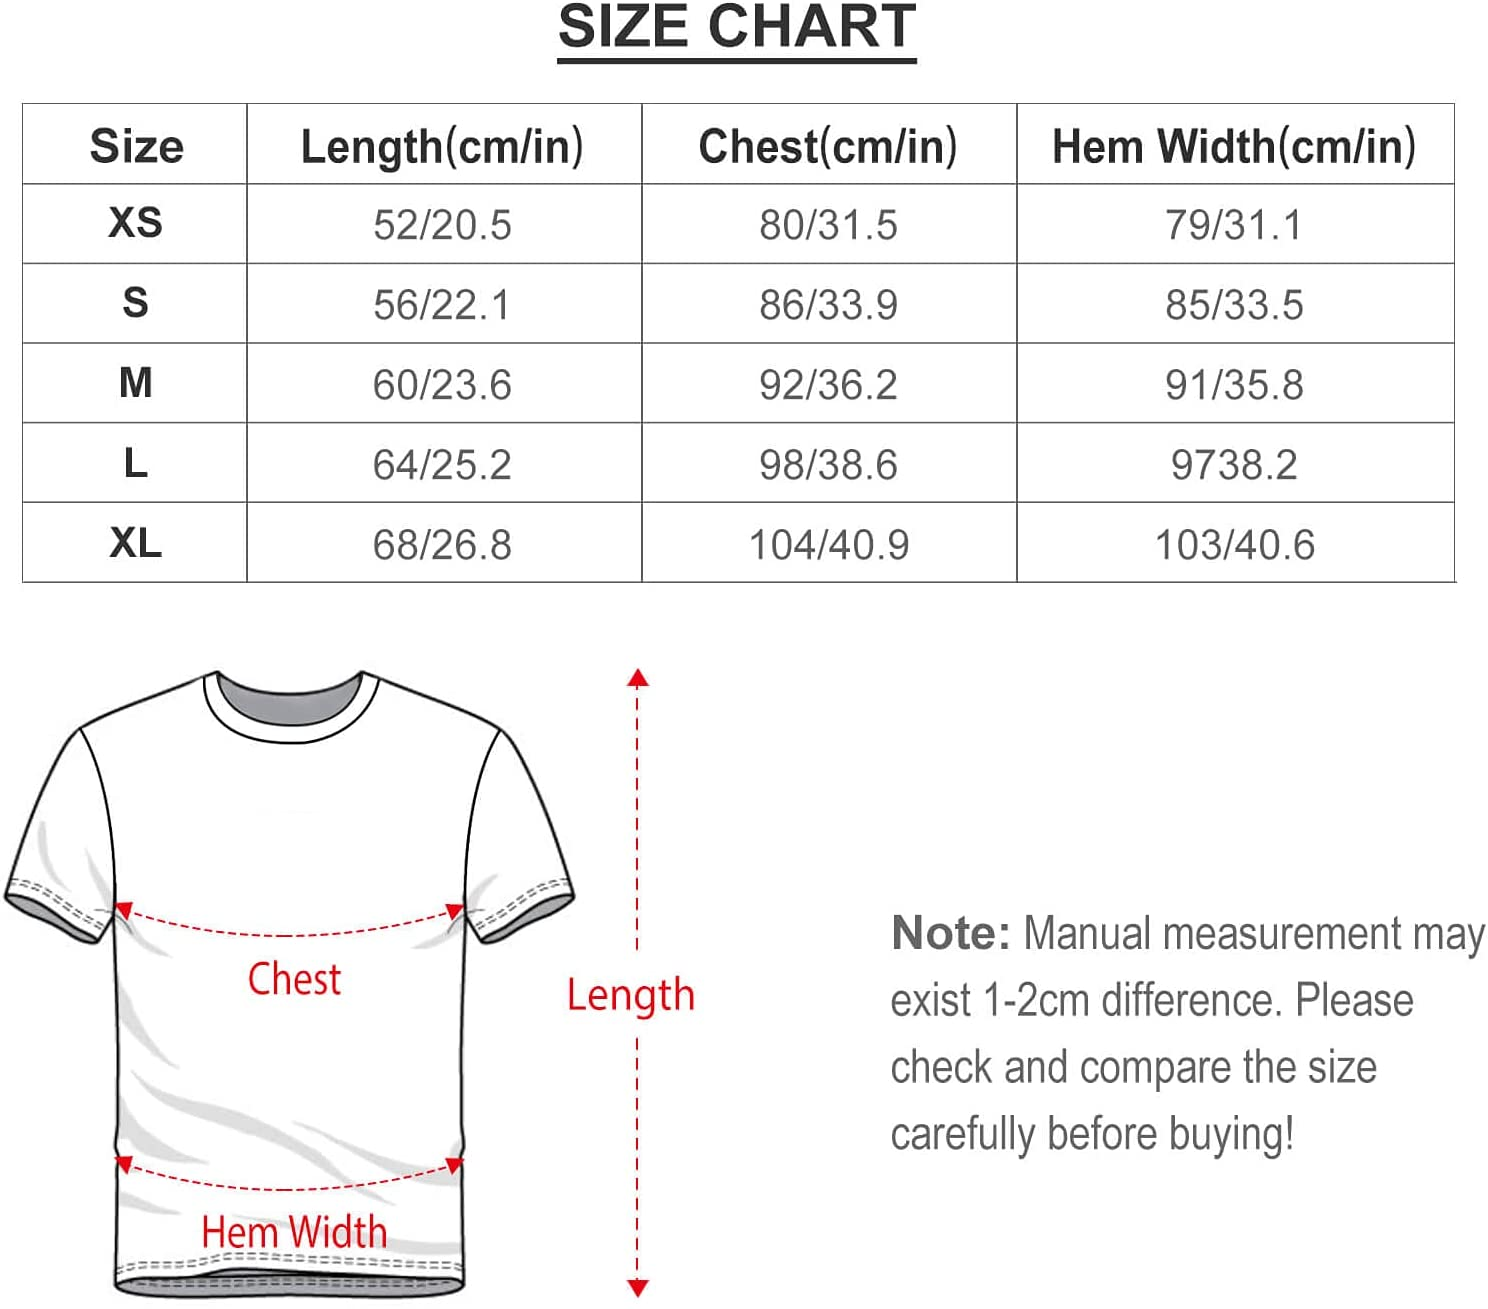 SWEET TANG Boys and Teens Comfortable T-Shirts and Shorts Outfit Set, Funny Short Sleeve Crewneck Tee and Beach Board Shorts for Running Outdoor Activities, Pirate Skull Flag, Small